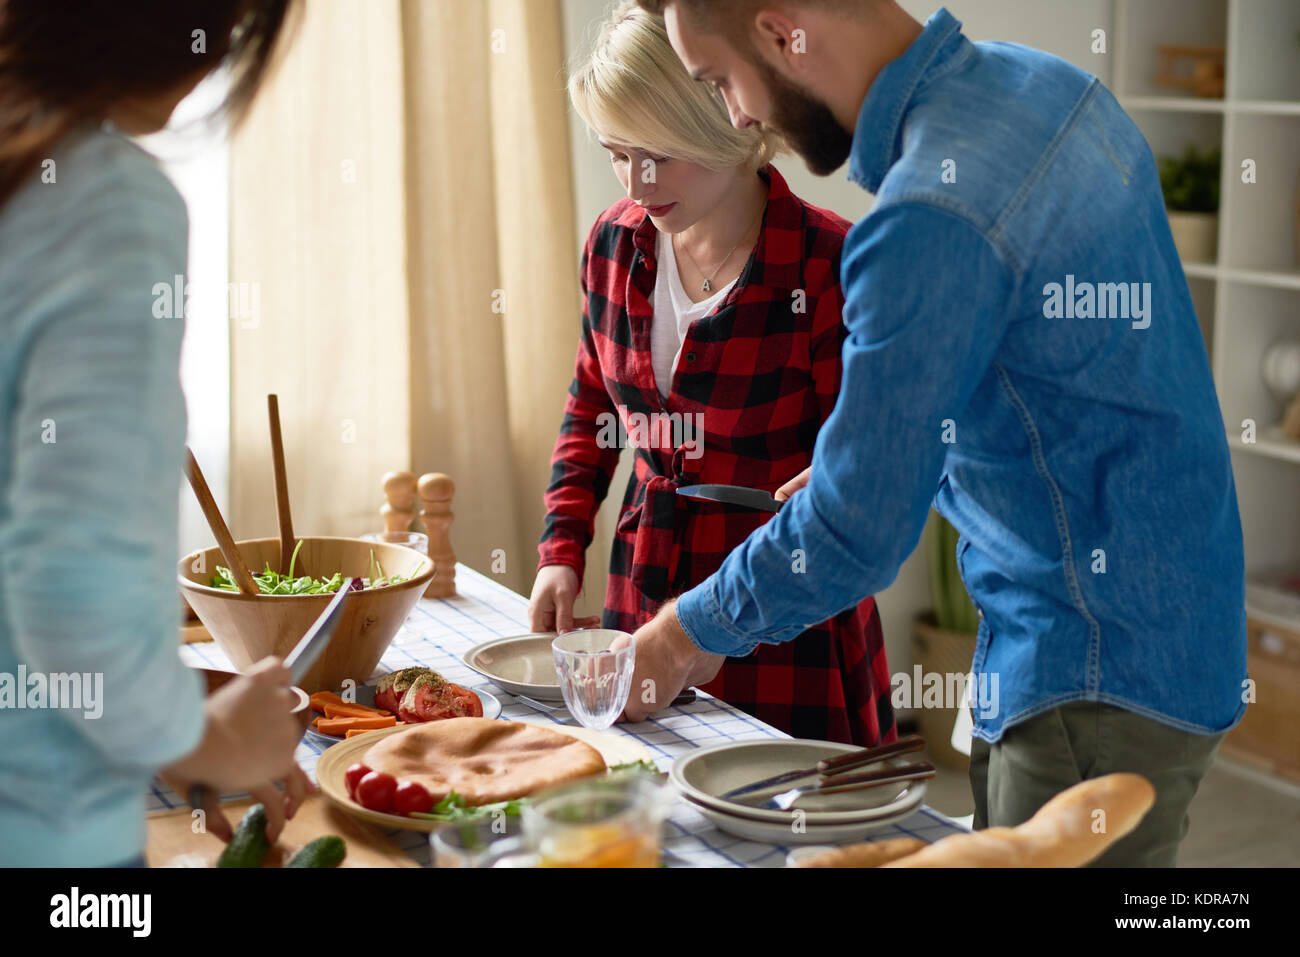 Young Friends Making Dinner - Stock Image